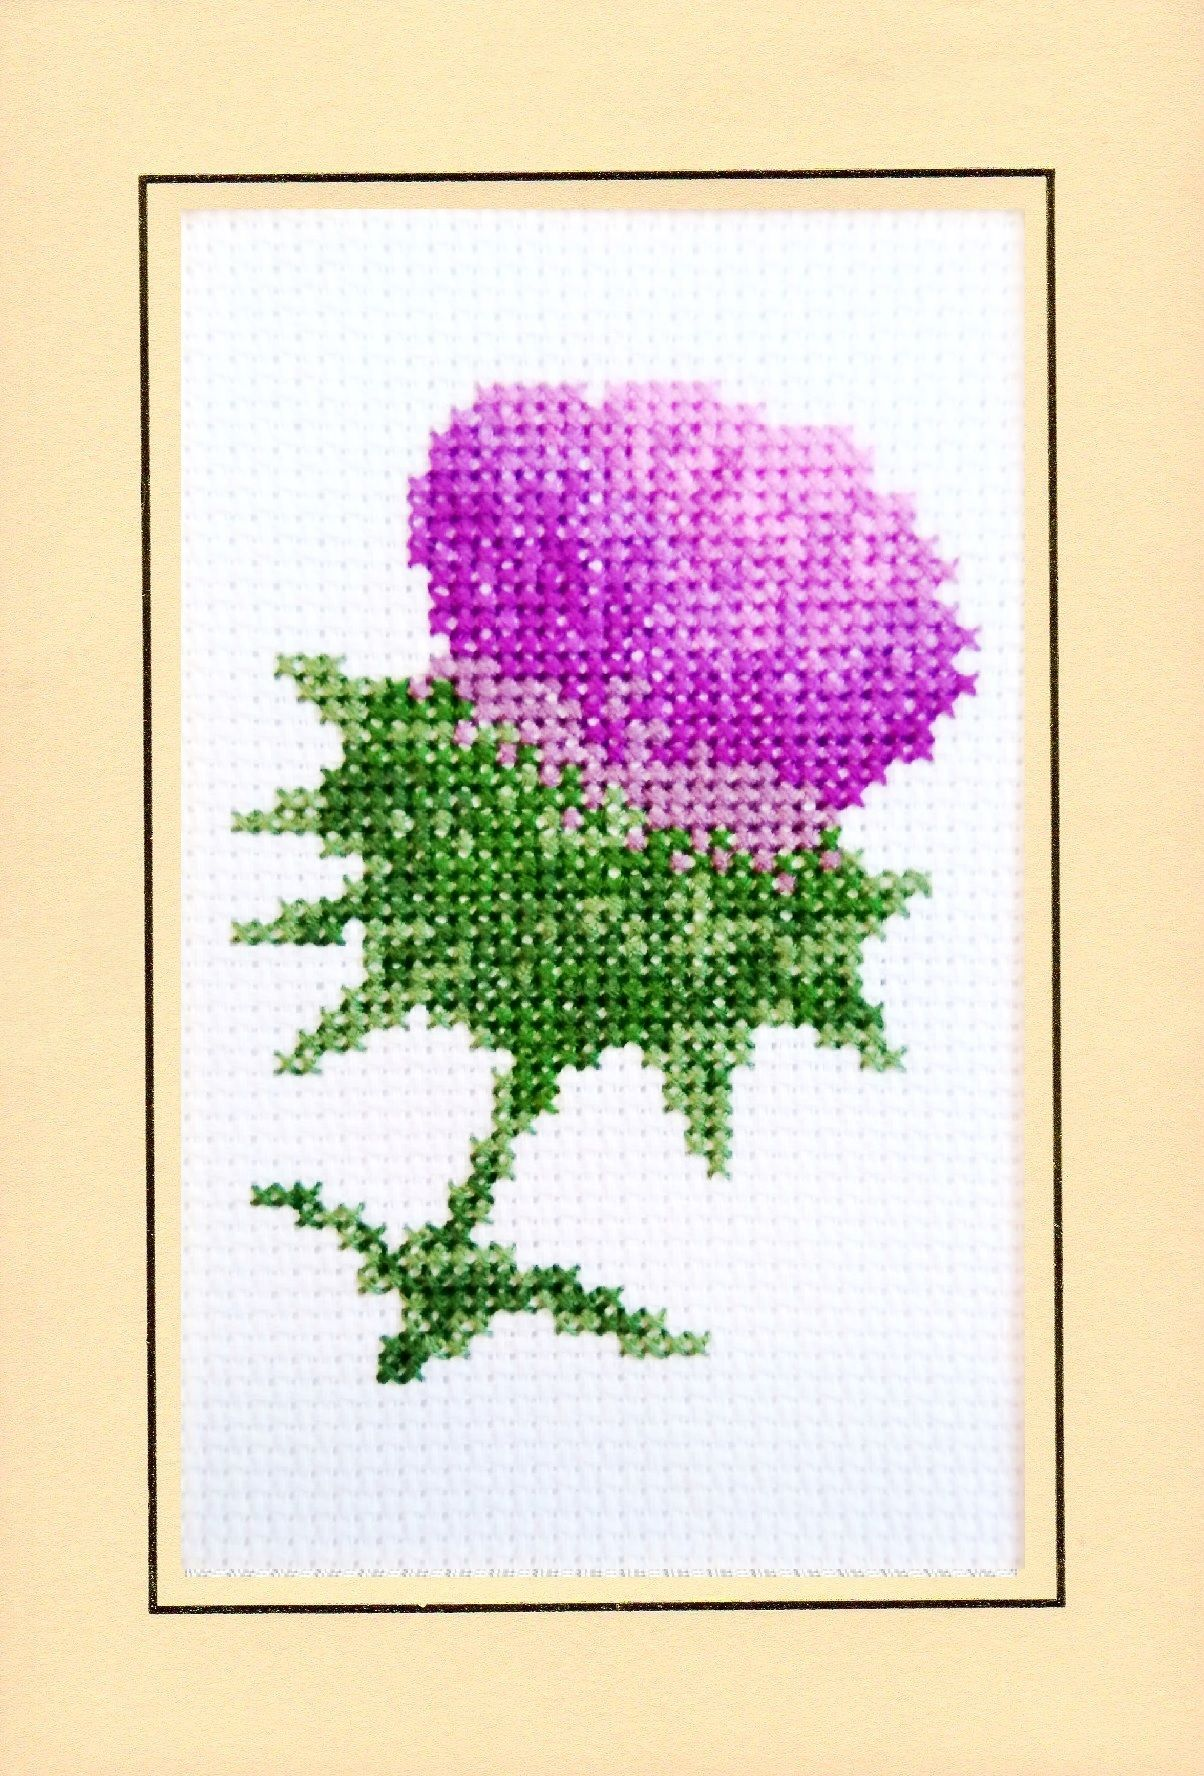 Scottish thistle birthday plain a6 greeting cross stitch card kit scottish thistle birthday plain a6 greeting cross stitch card kit m4hsunfo